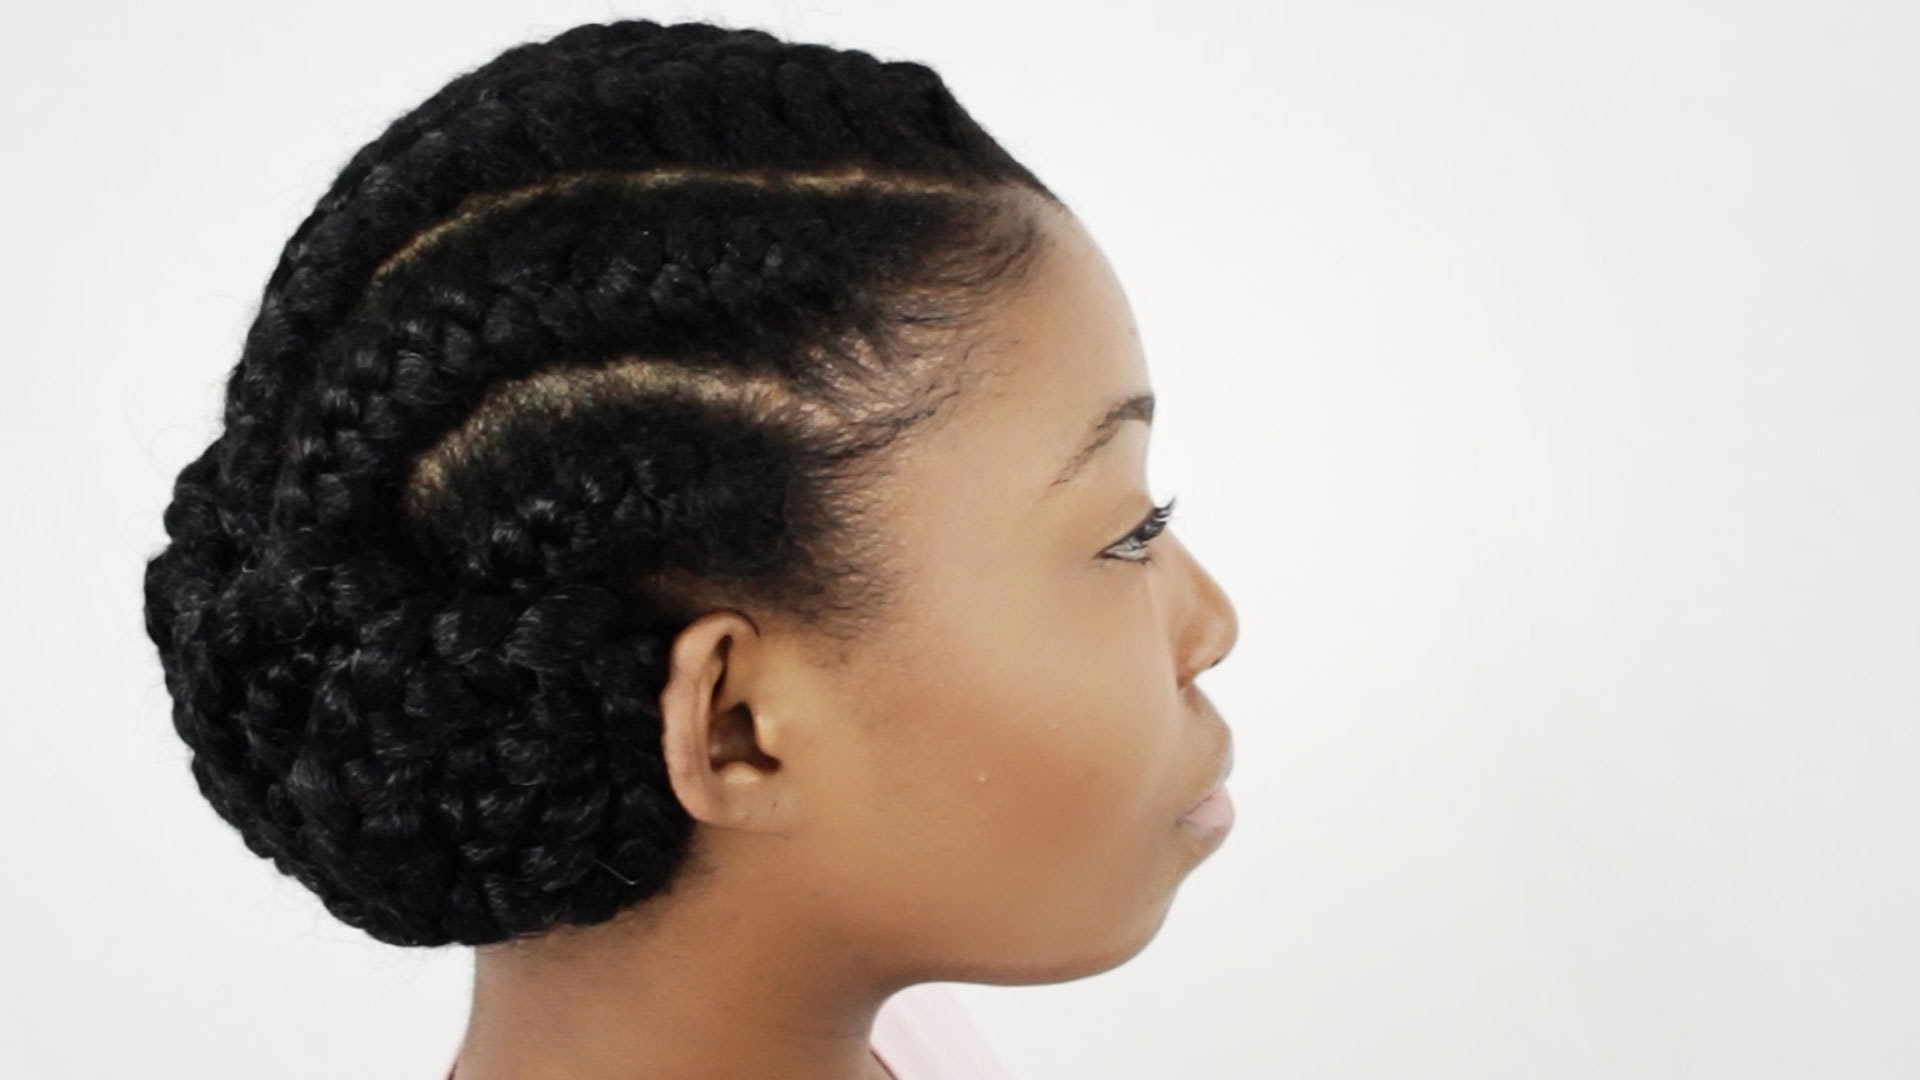 Goddess Braids Updo Hairstyles 1000+ Images About Braids On For Goddess Updo Hairstyles (View 9 of 15)